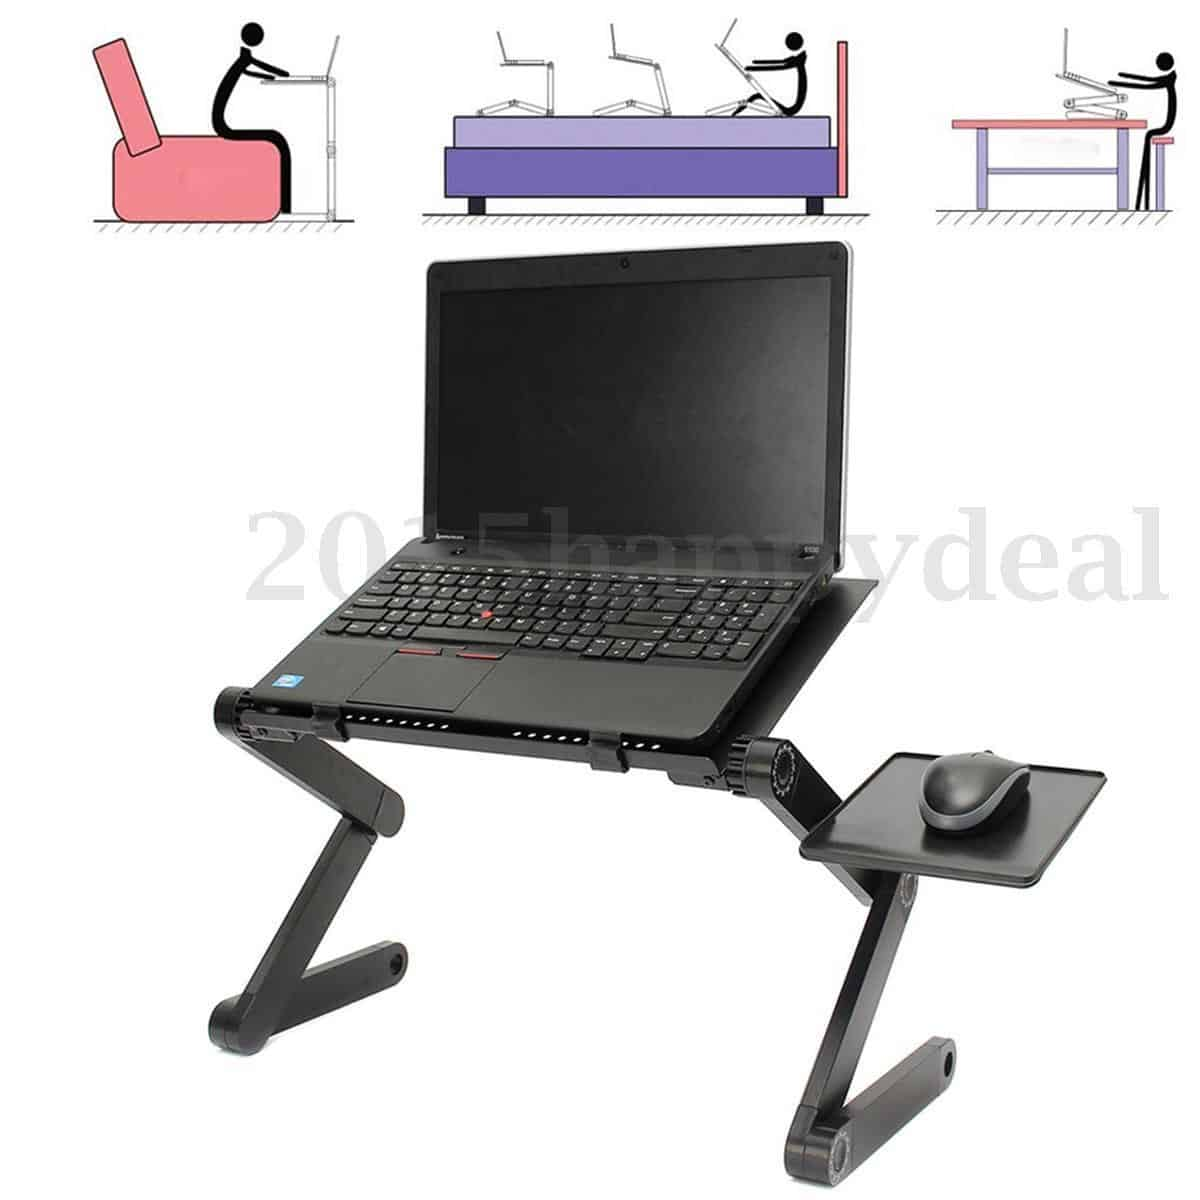 faltbarer notebook tisch aus aluminium ab 15 55 euro inkl. Black Bedroom Furniture Sets. Home Design Ideas